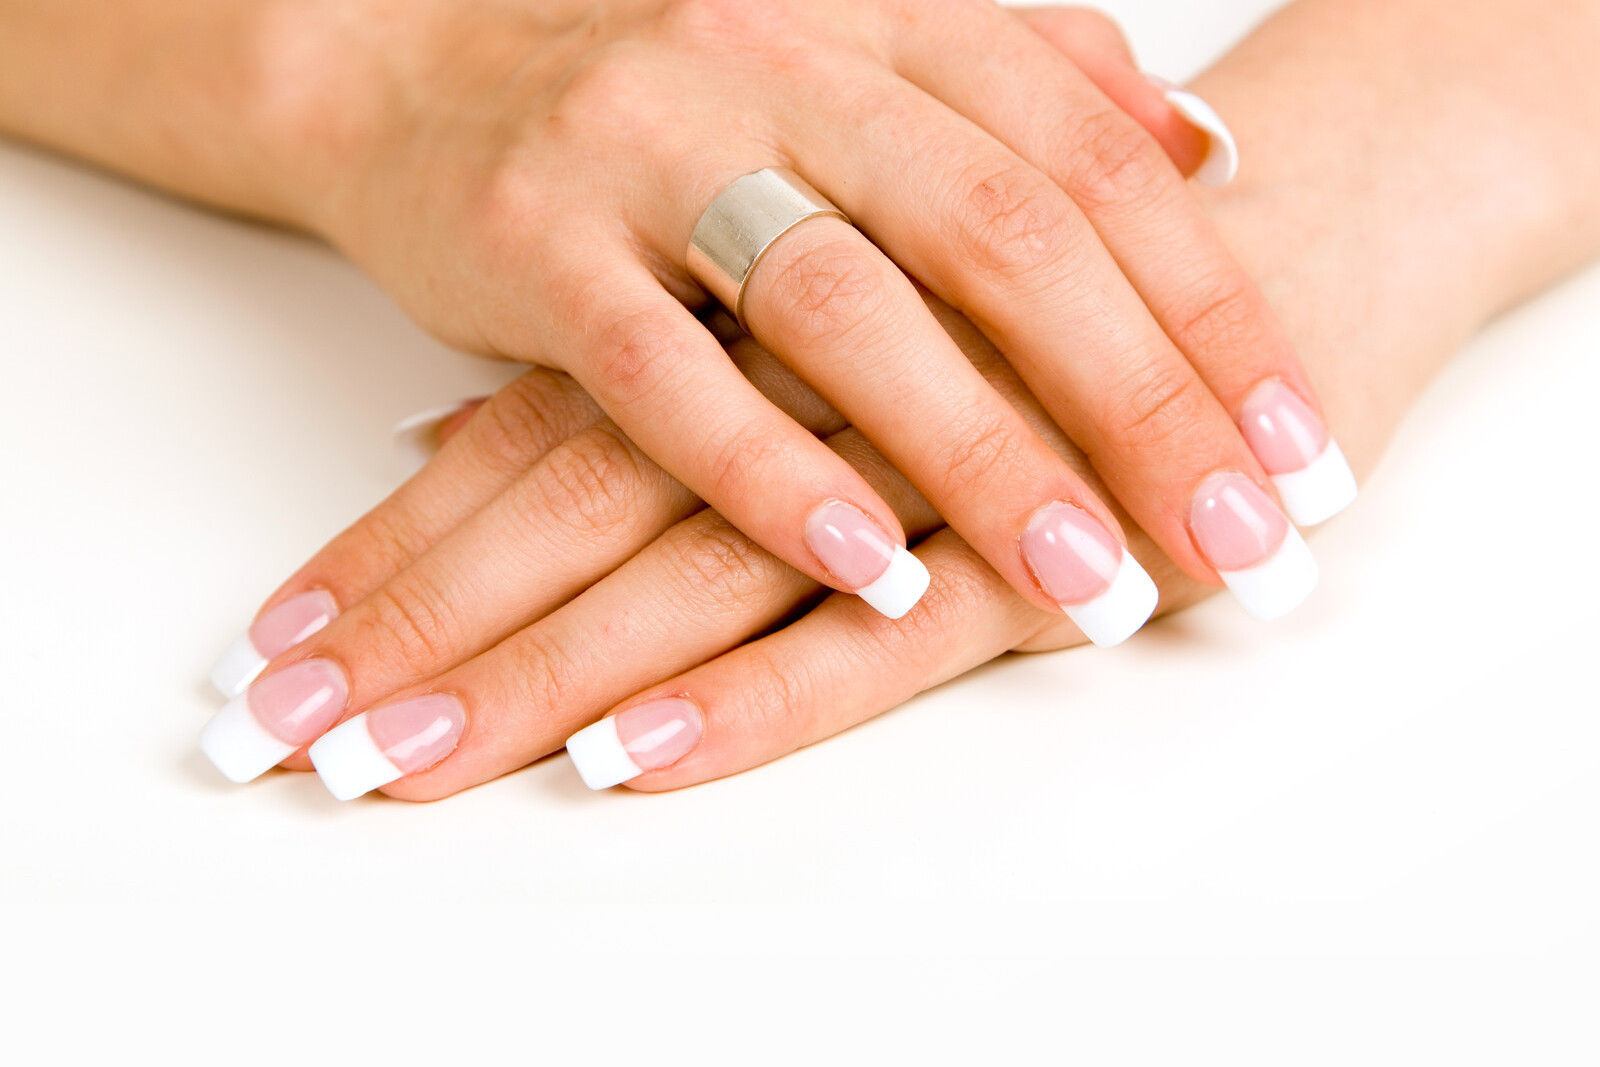 Nail Services (Manicures, Gel, Shellac & Pedicures) from Touch of Style Salon in Loveland, CO